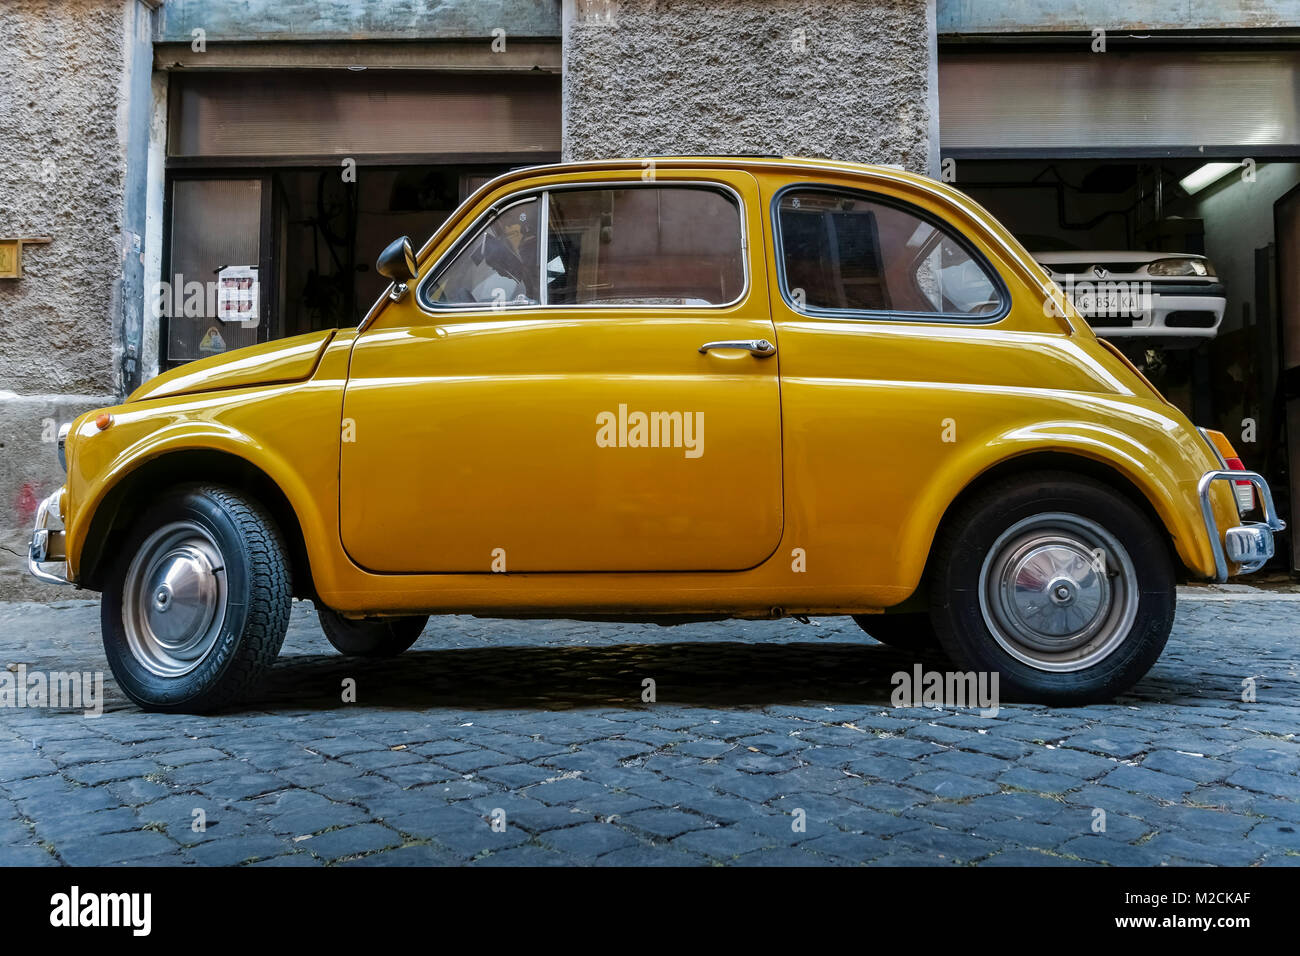 Fiat 500 Fabricated In 1970 Old Style Classic Vintage Retro Car